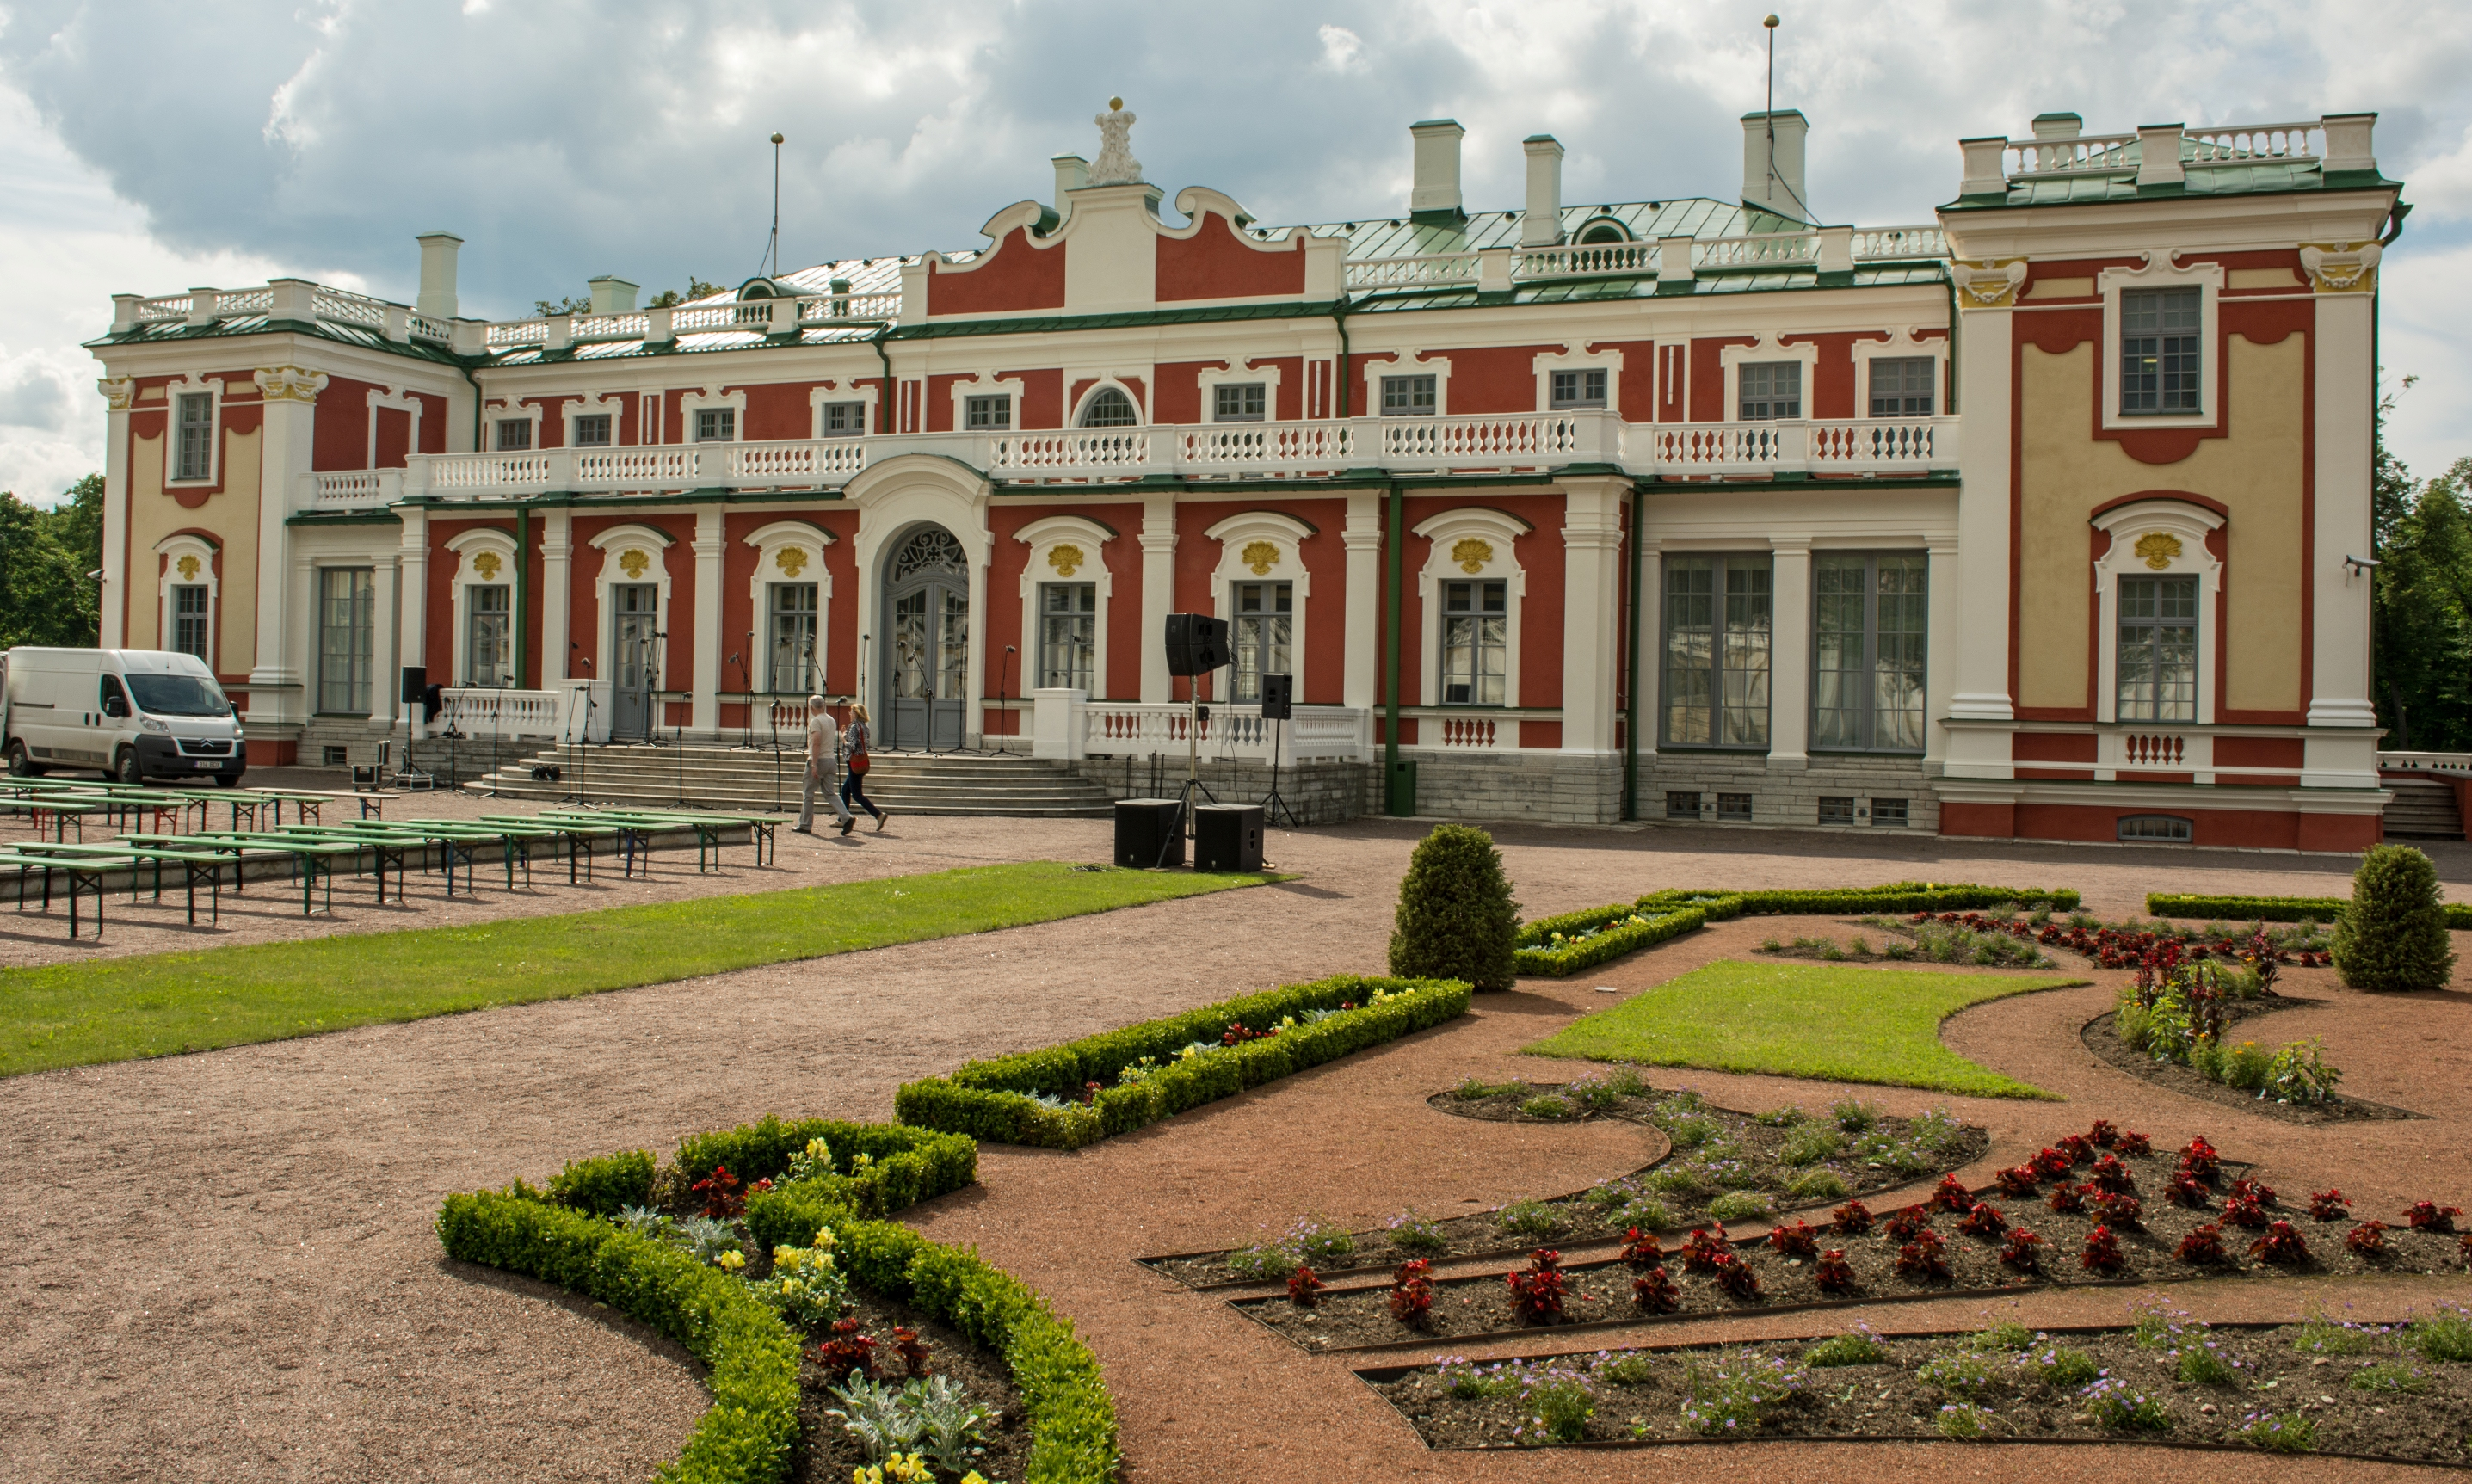 Best Things to Do in Kadriorg, Tallinn